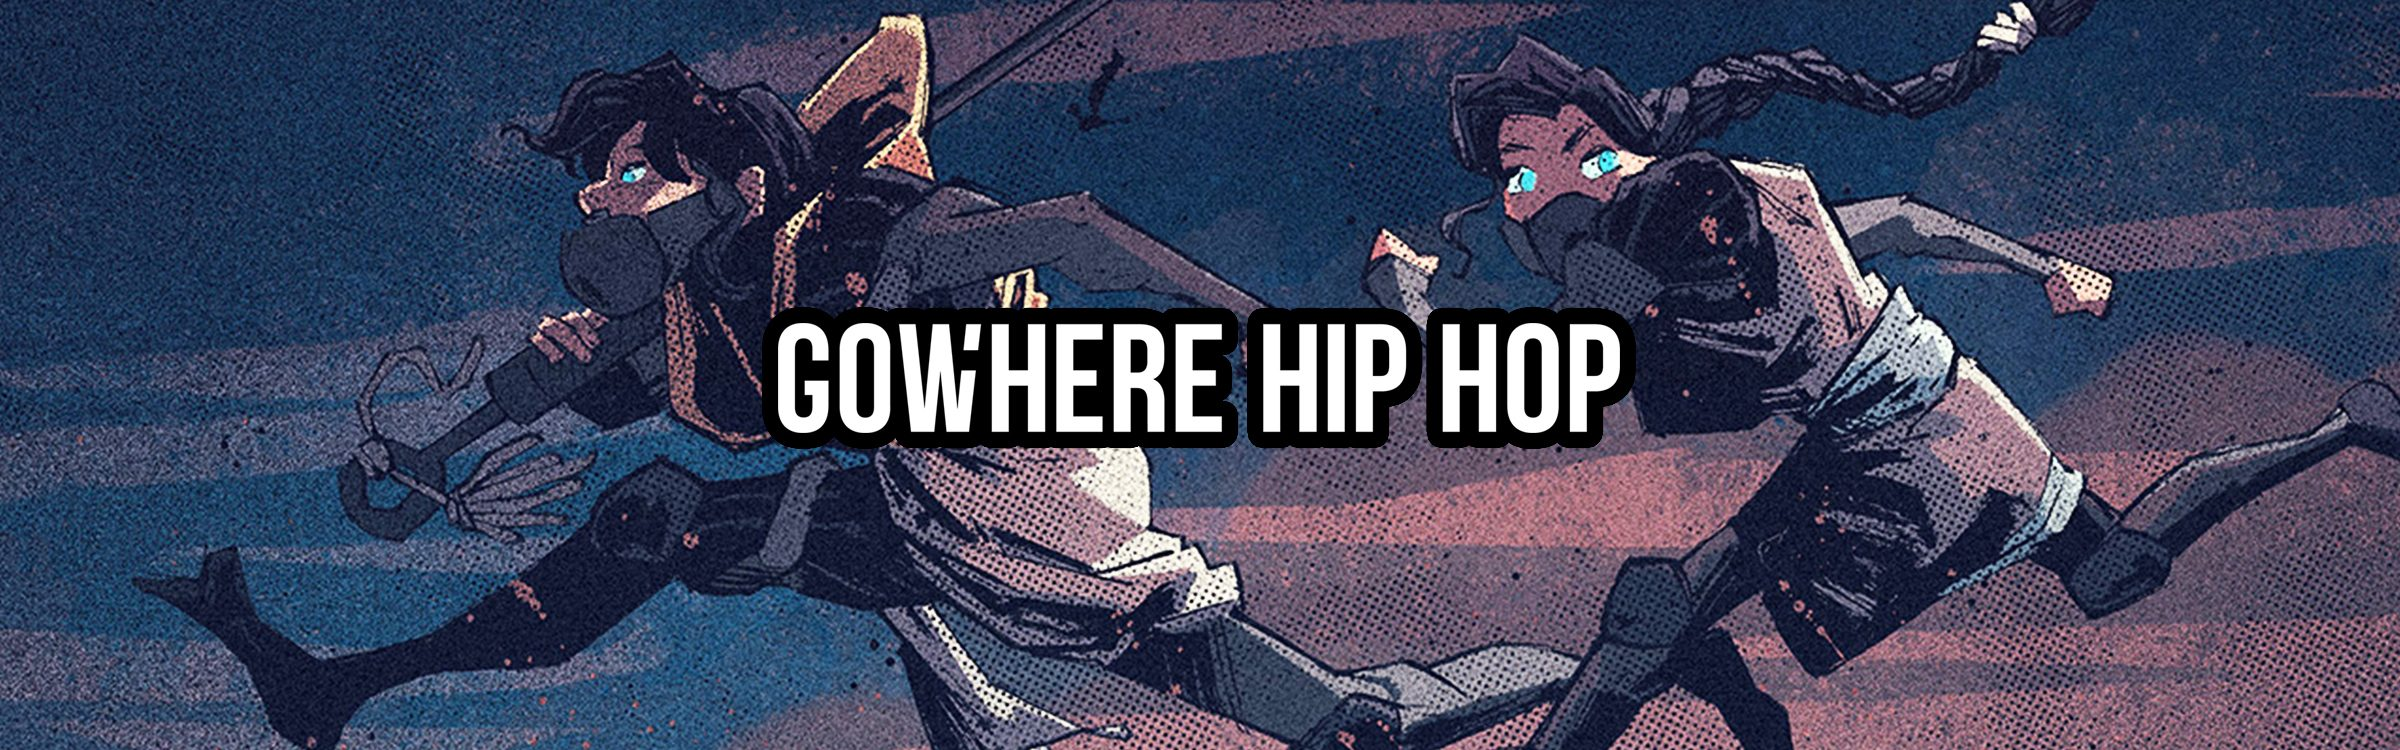 Gowhere Hip Hop